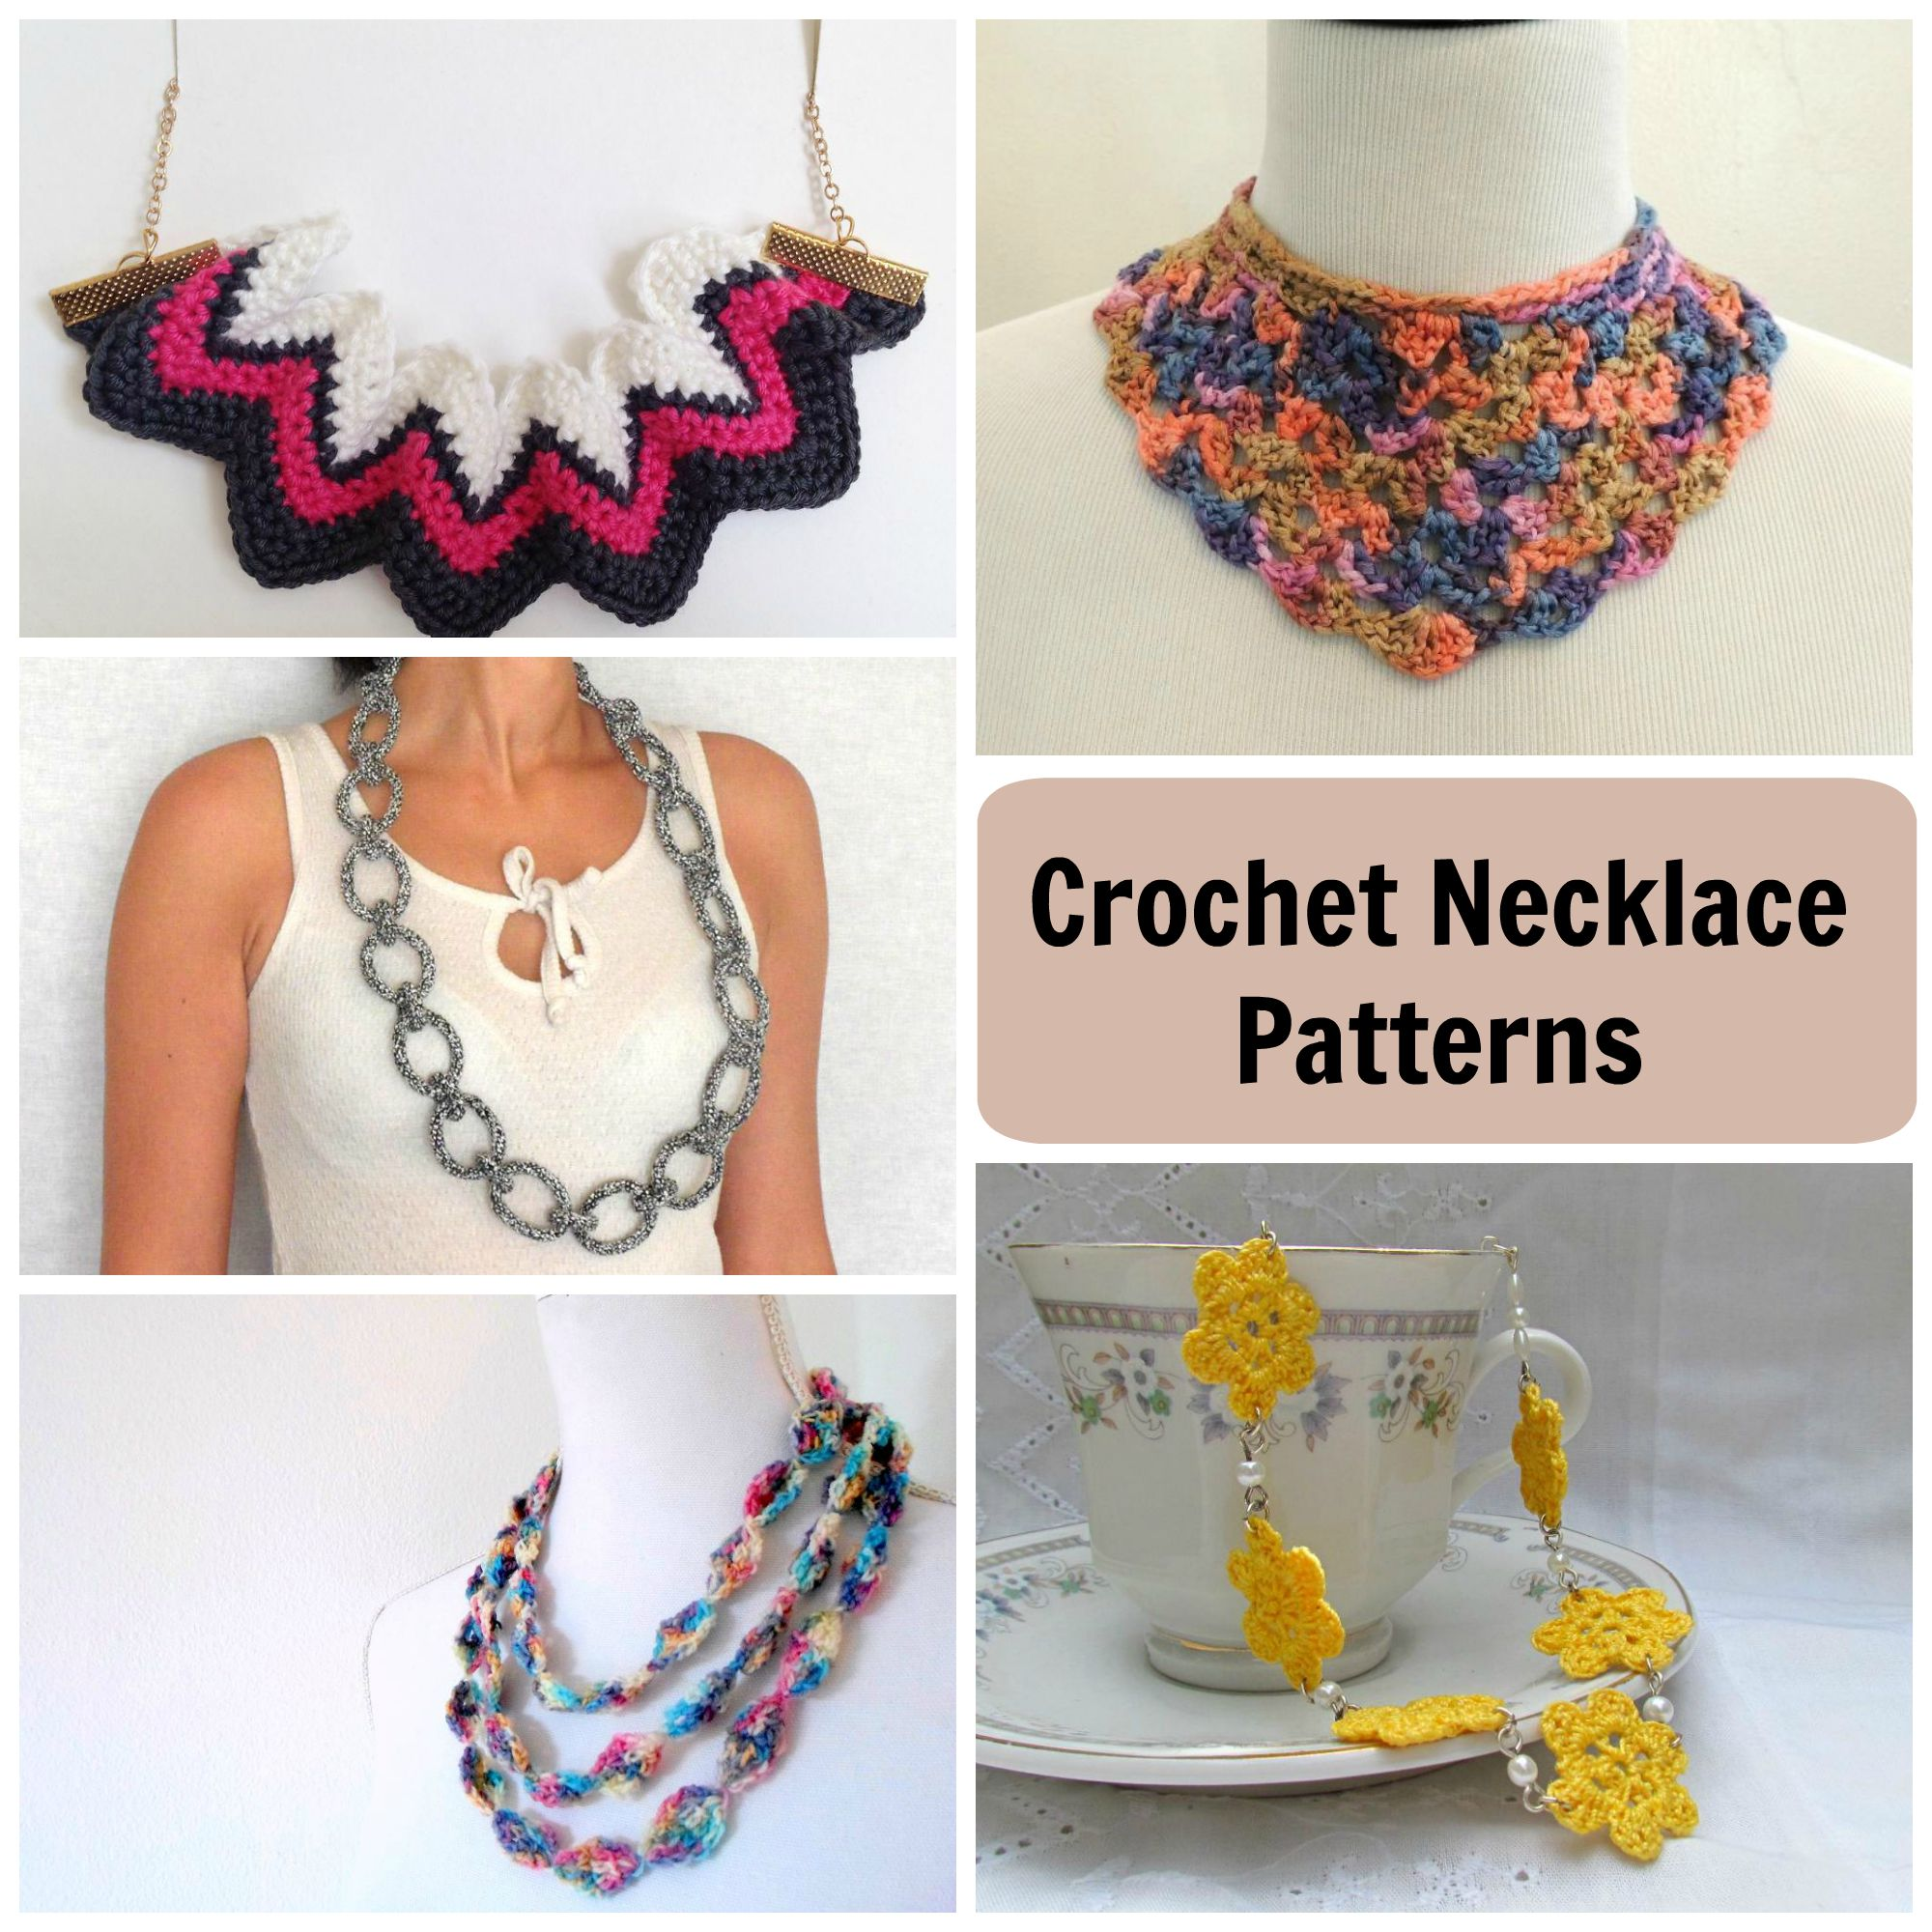 crochet jewelry patterns ... crochet necklace patterns MYGFVKE